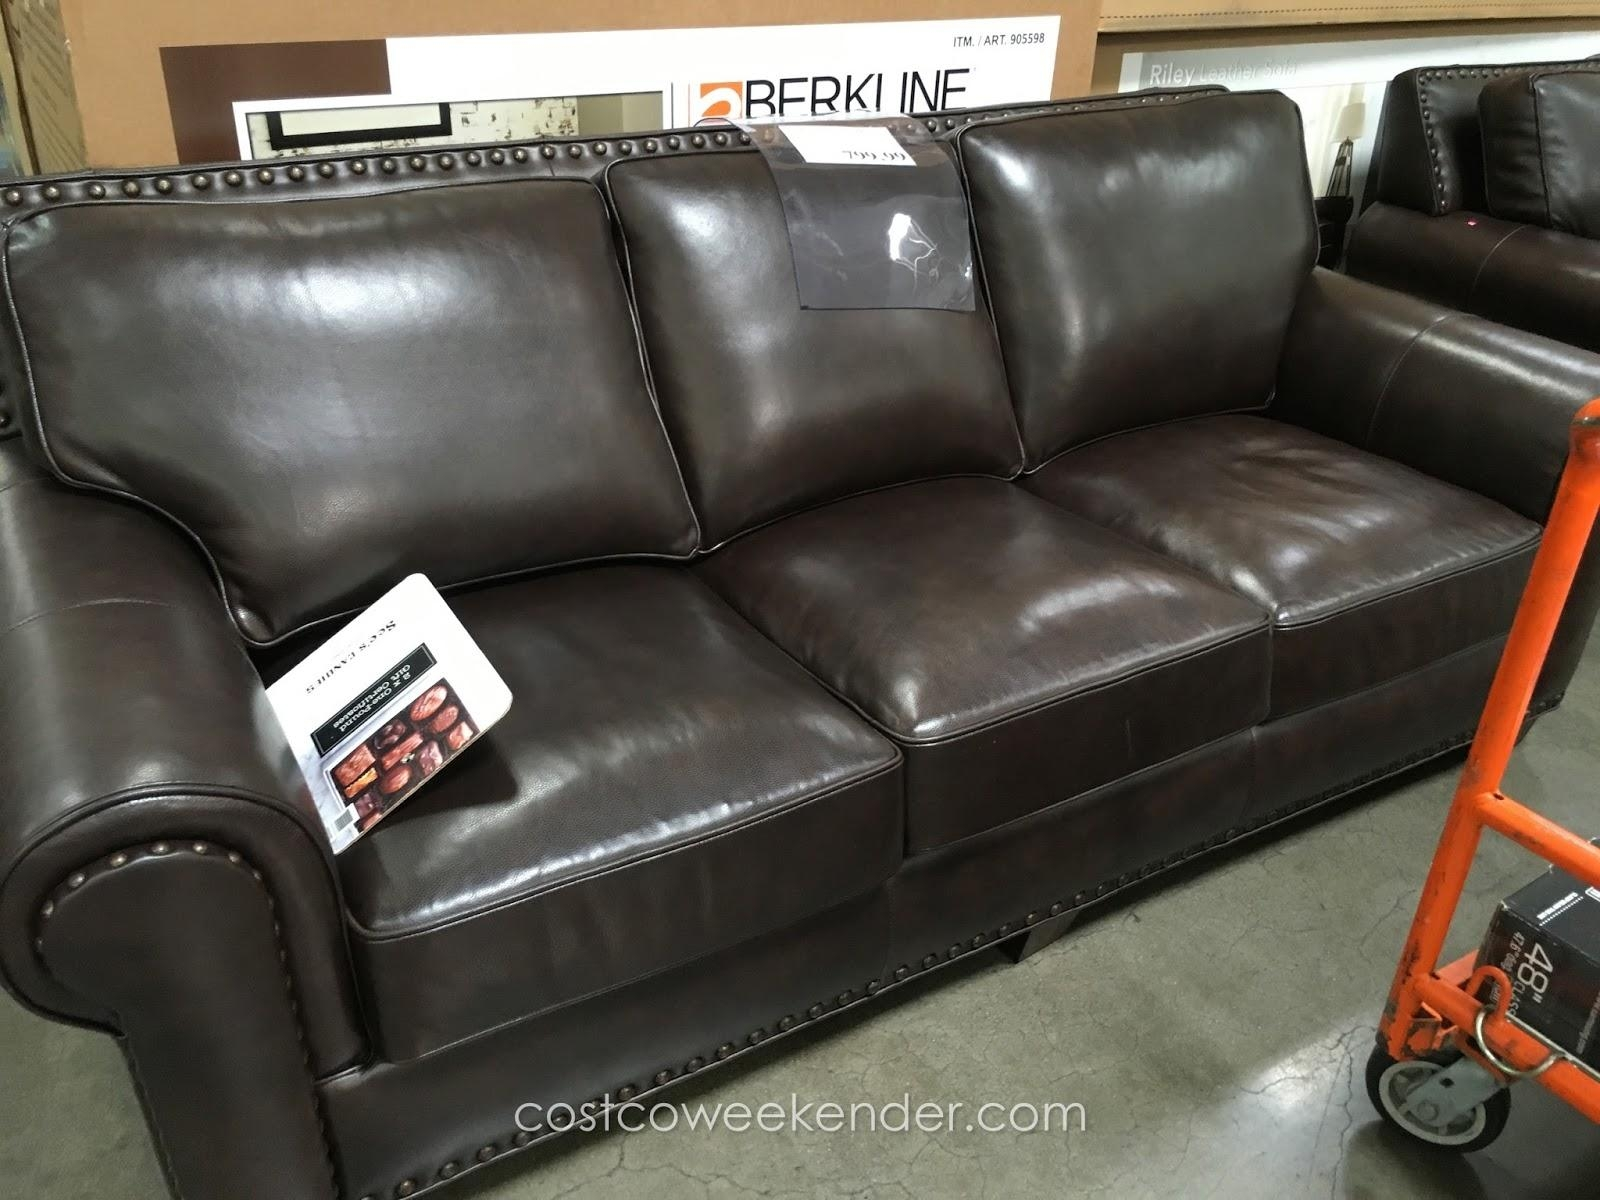 Furniture & Sofa: Enjoy Your Holiday With Costco Home Theater With Regard To Berkline Leather Sofas (View 6 of 20)